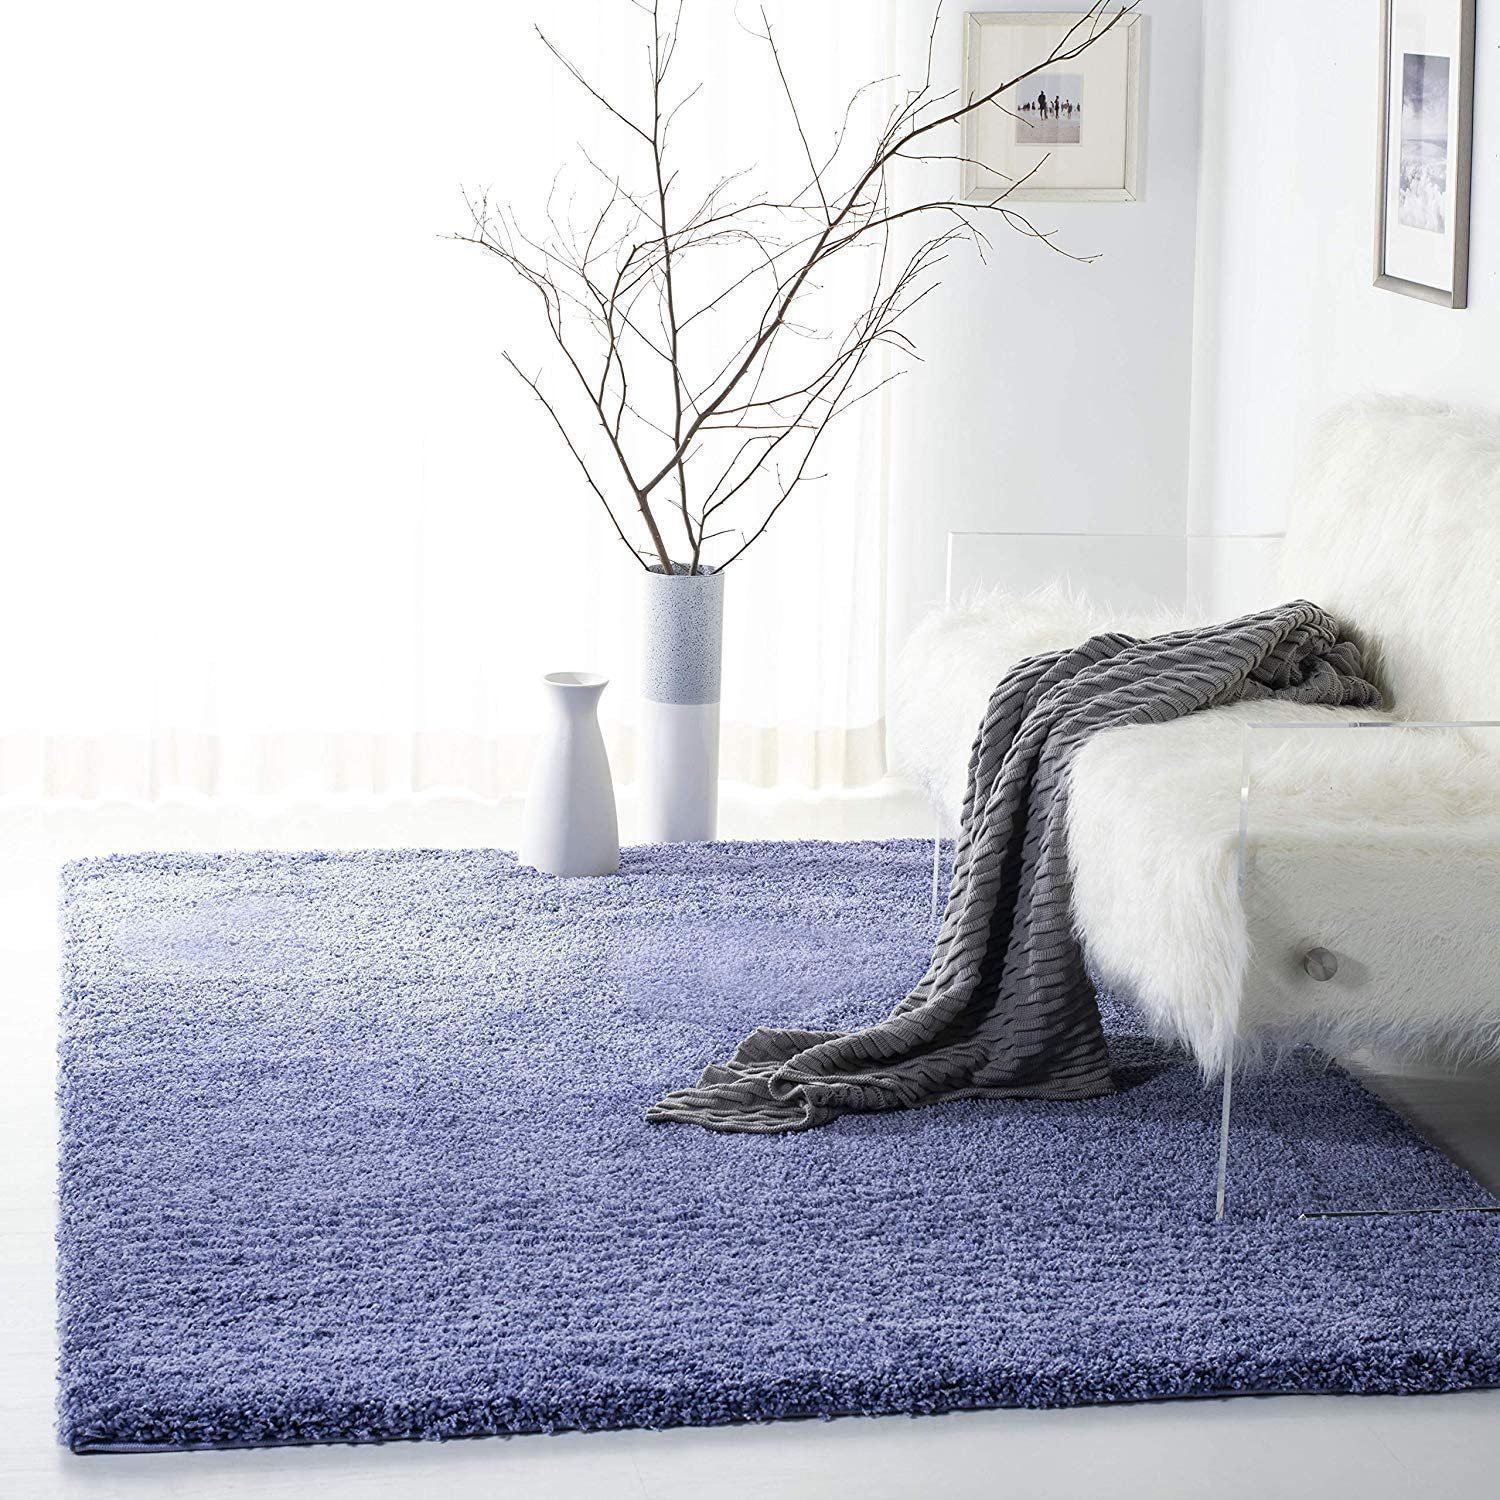 Singar Max 64% OFF Carpet Handwoven Fluffy High quality new Shaggy Collection 2 with i